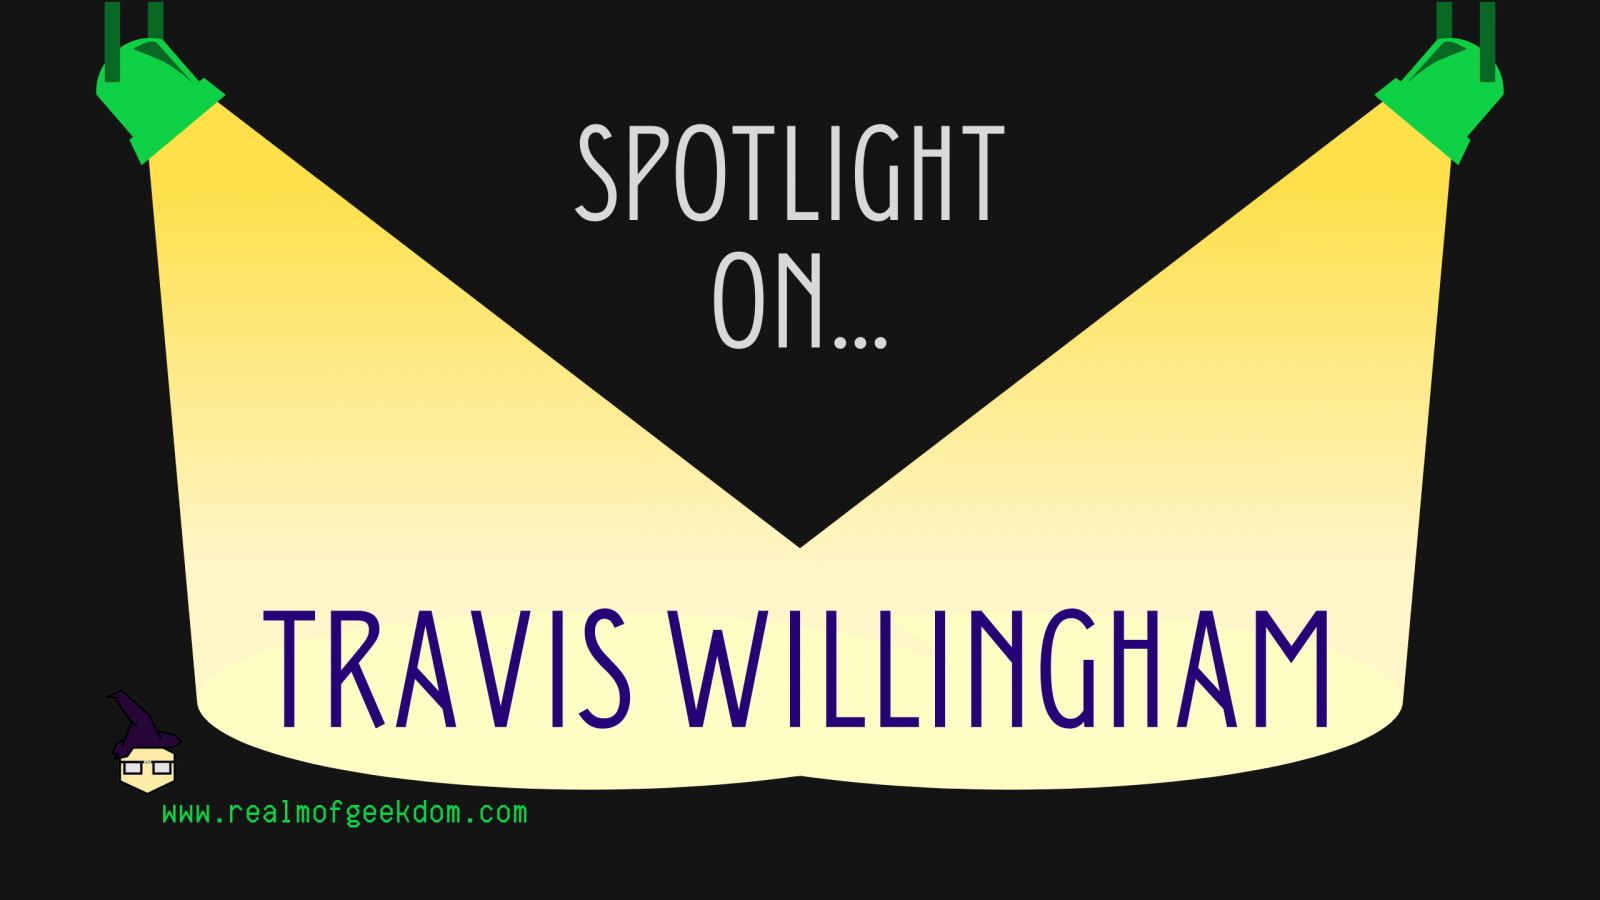 Spotlight on Travis Willingham header image